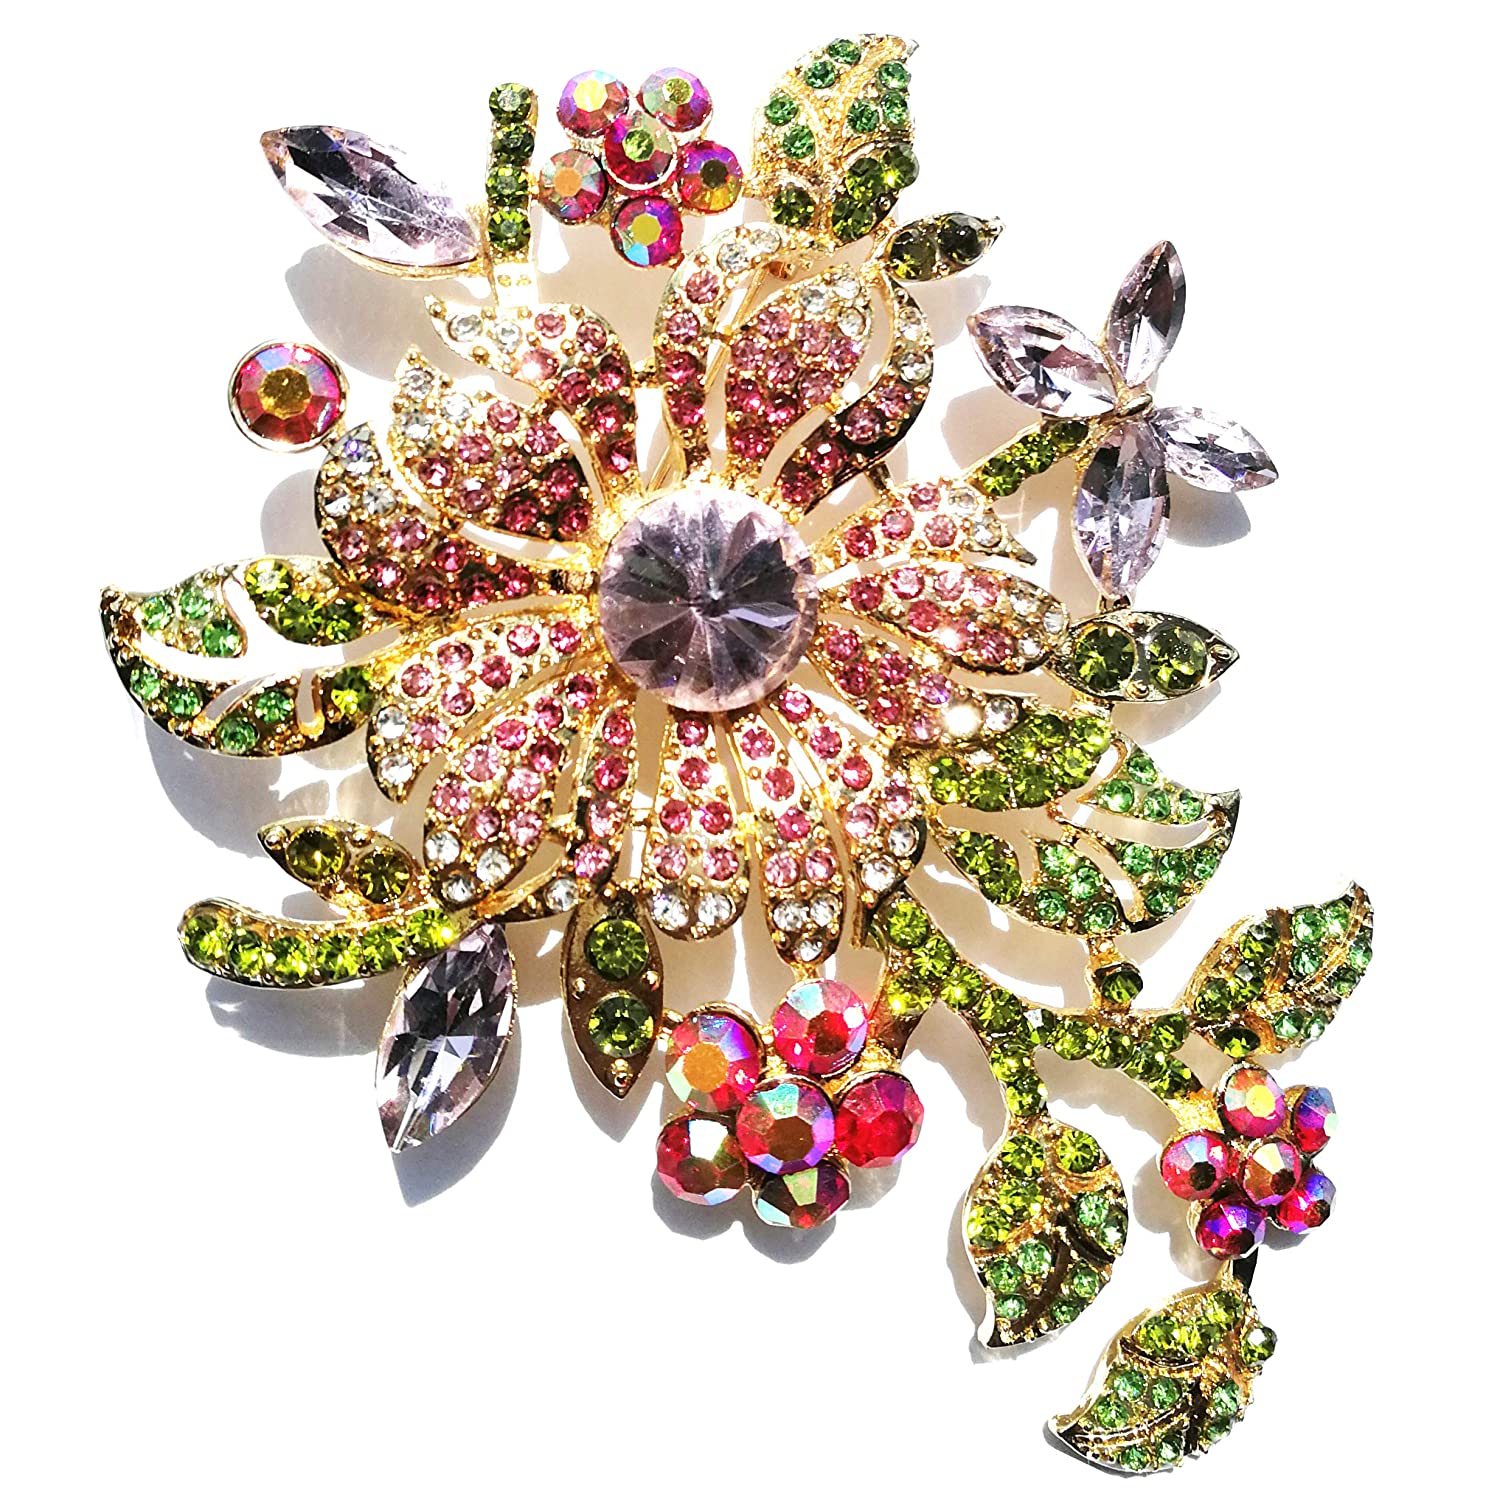 Vintage Style Jewelry, Retro Jewelry Klorify Big Flower Brooch for Woman Girl Elegant Pink Crystal Rhinestone Pin Romantic Wedding Bride Bridesmaid Rhinestone Brooches and Pins Jewelry $9.99 AT vintagedancer.com